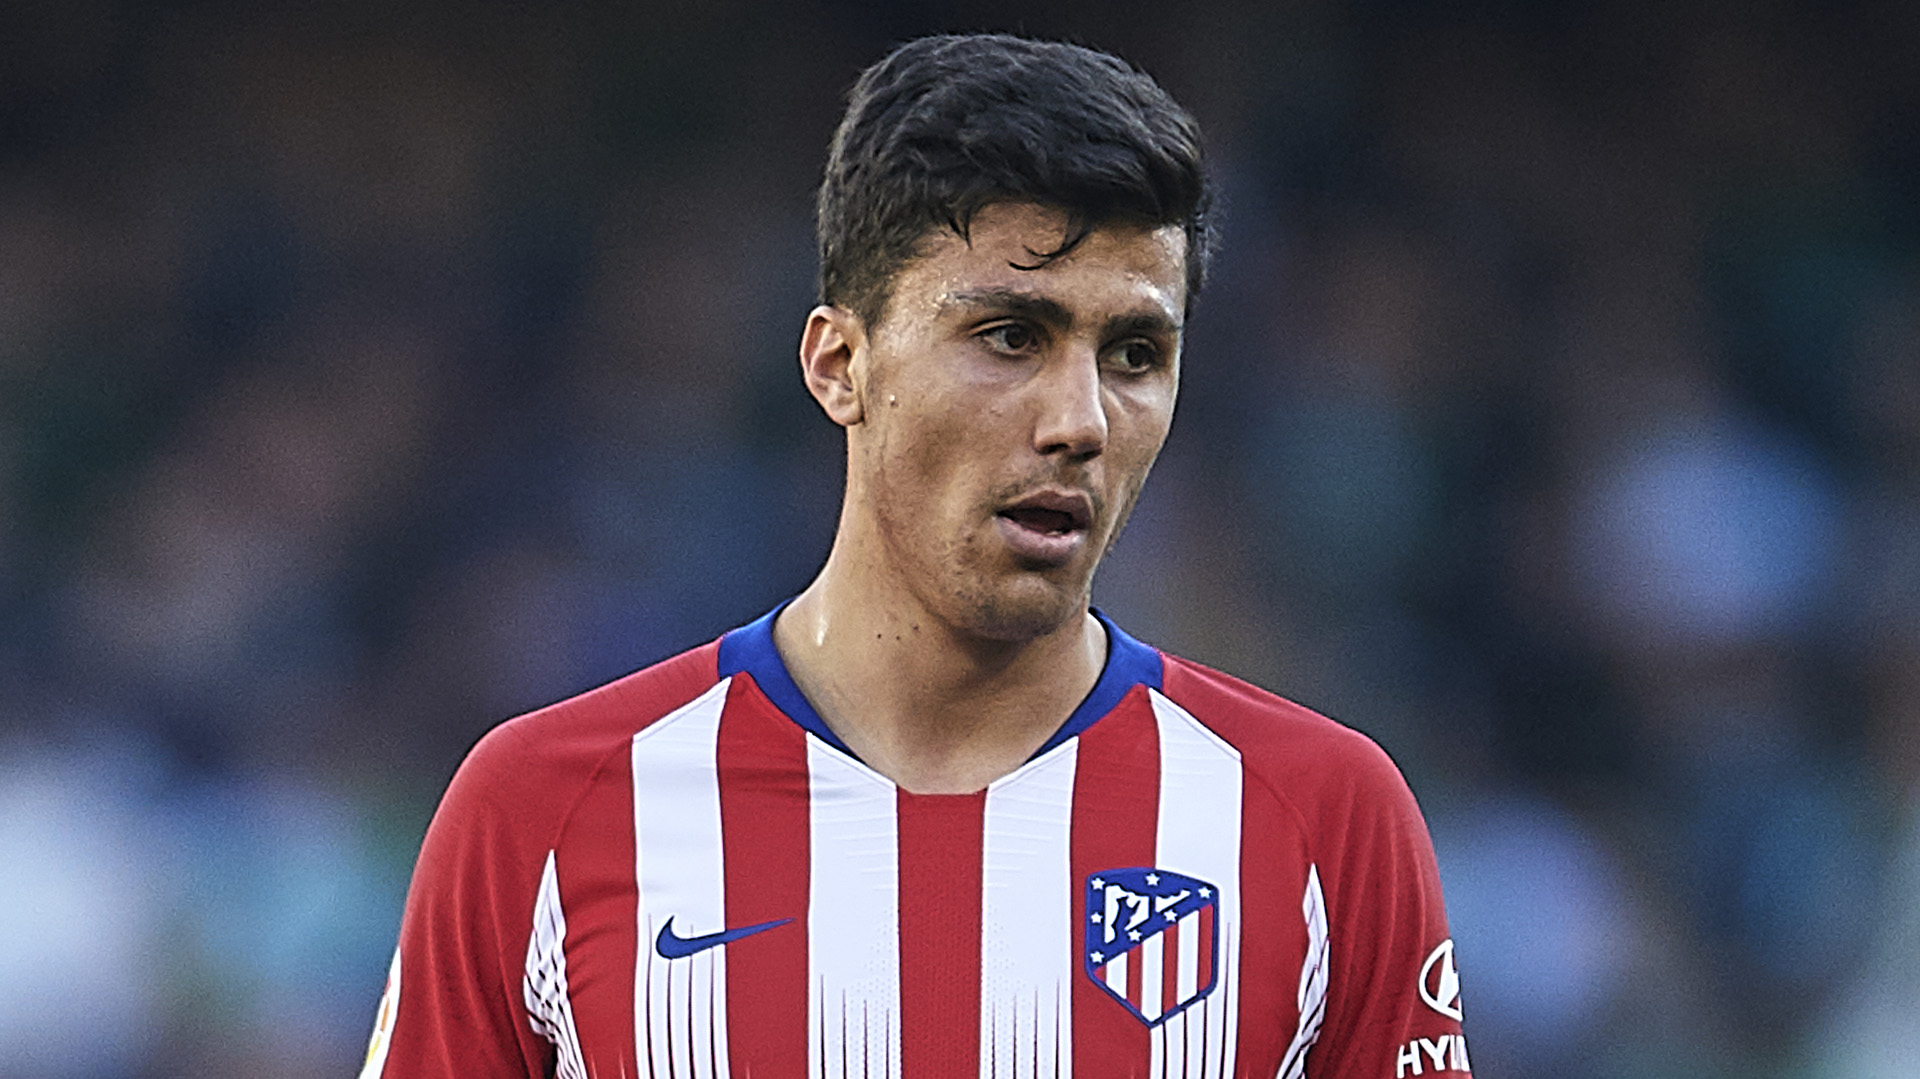 UAE- Man City sign Rodri for club record fee